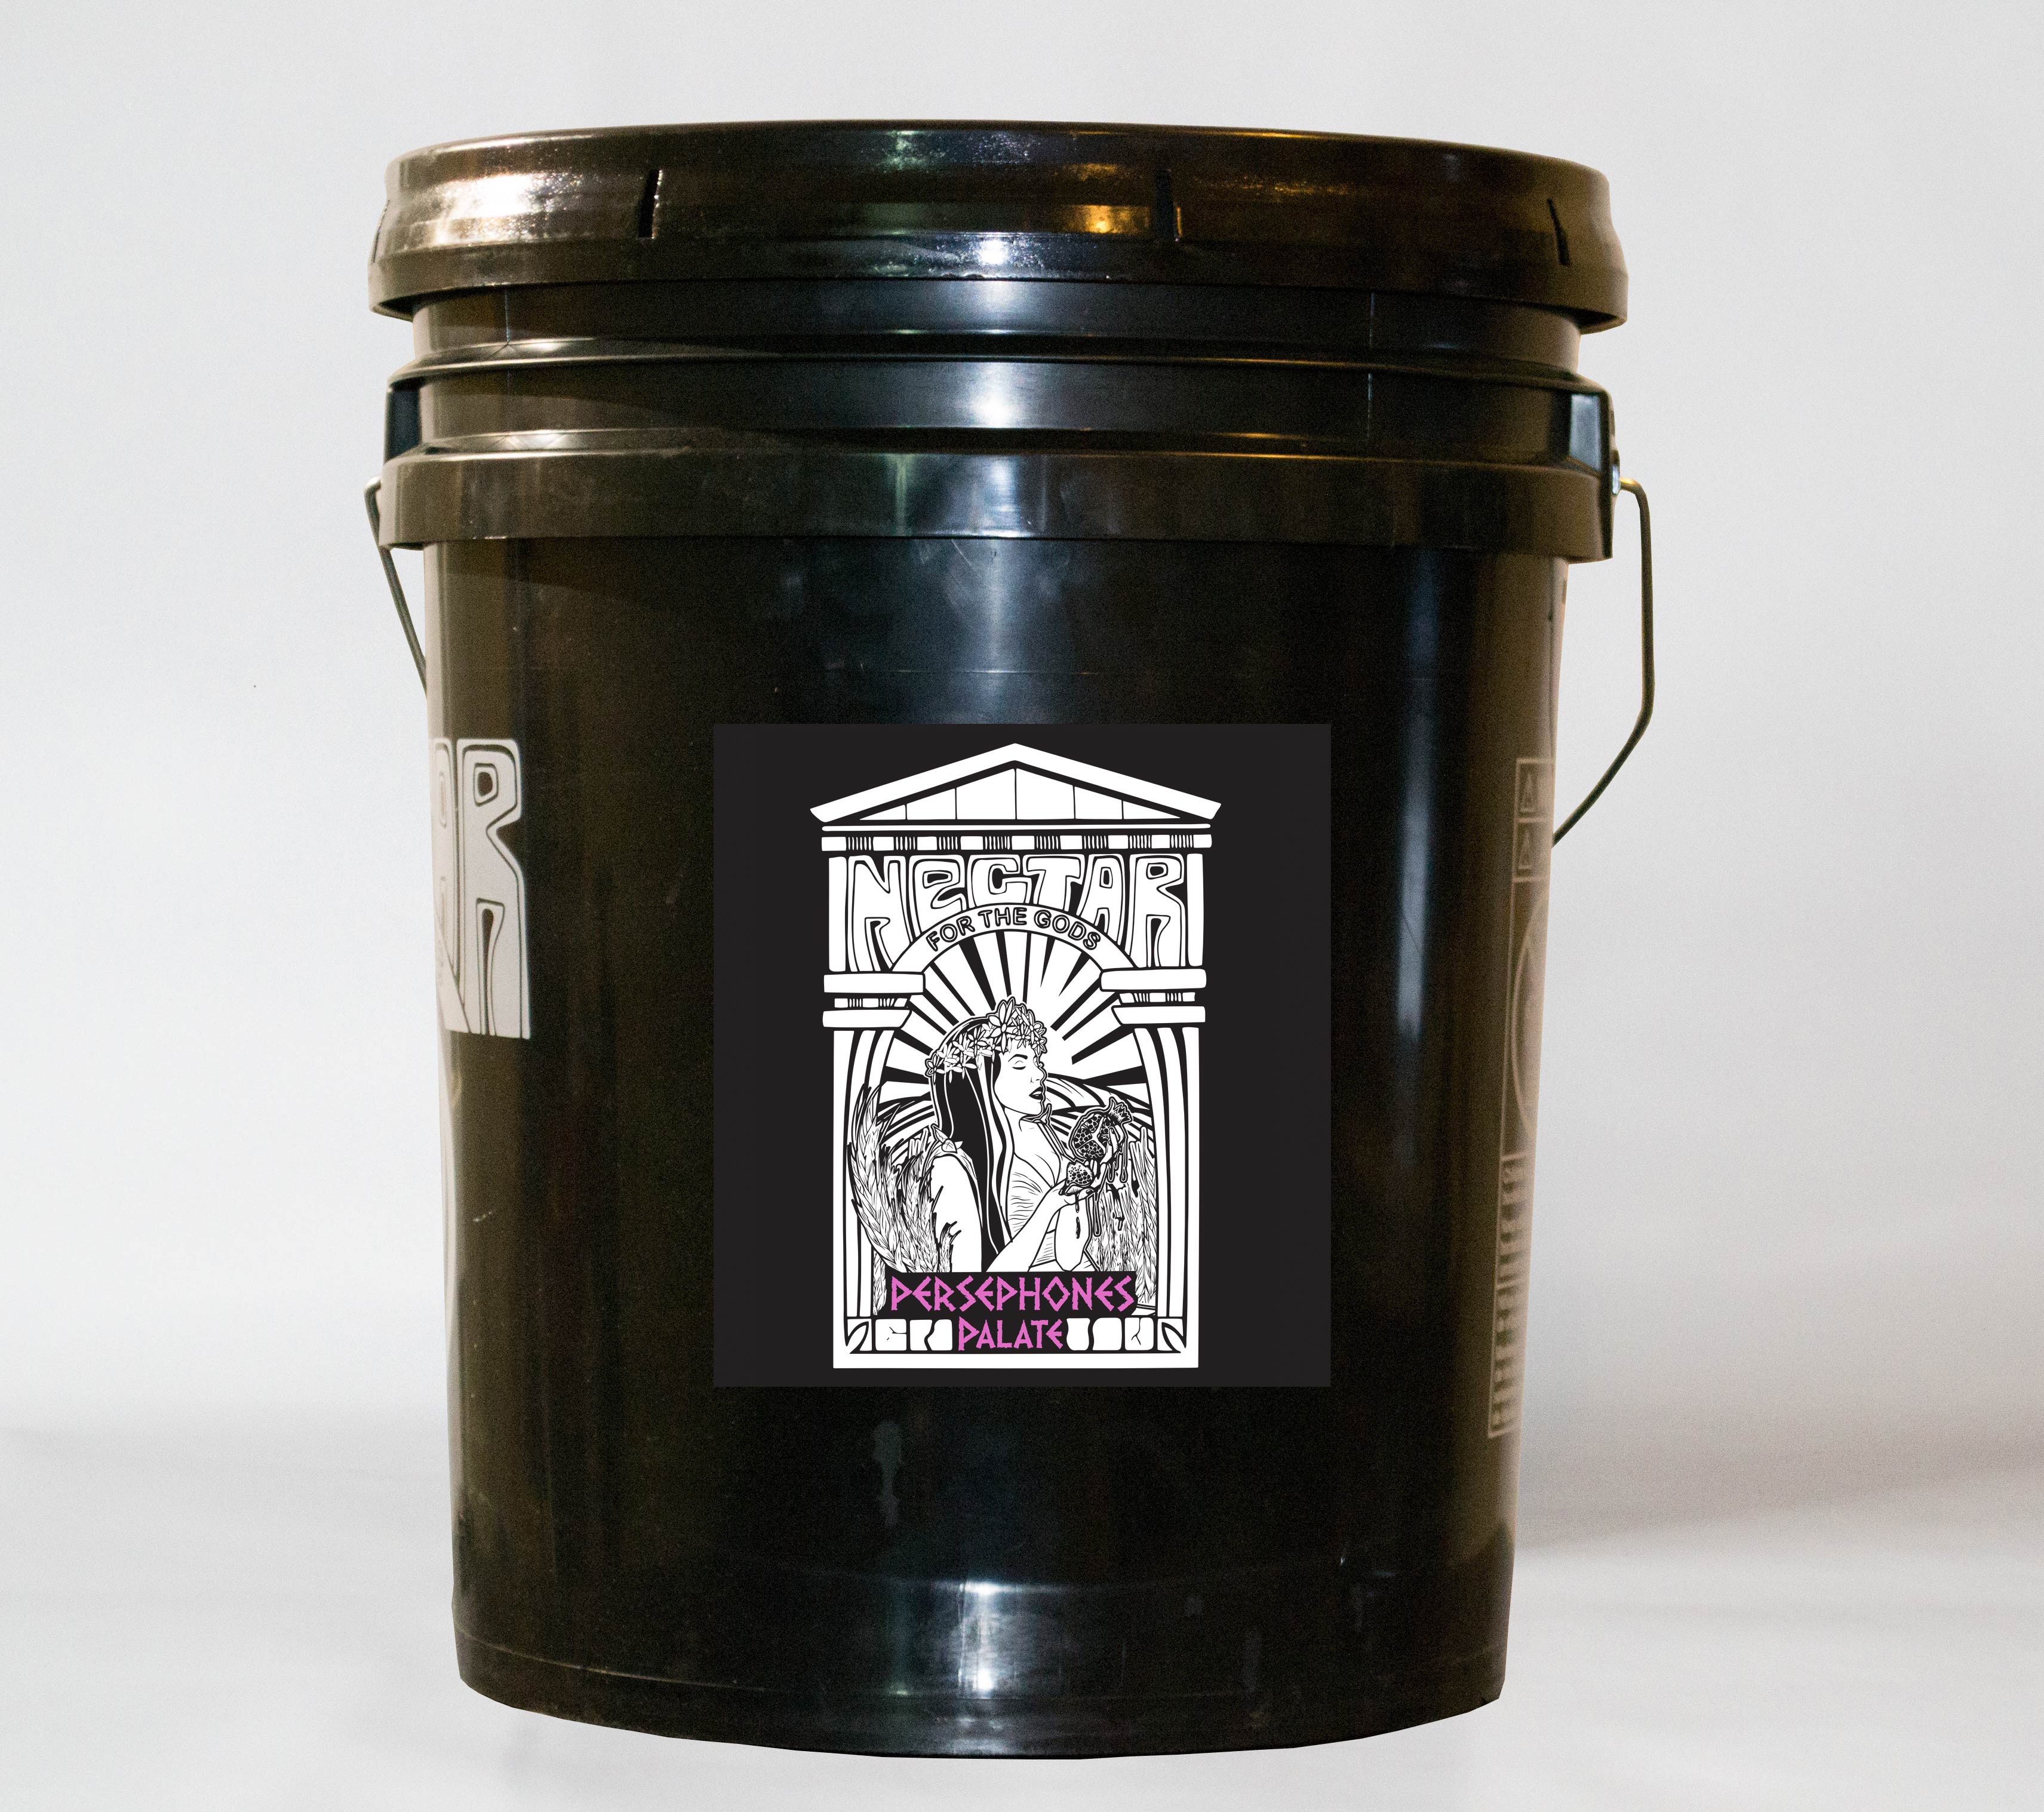 Nectar for the Gods Persephones Palate, 5 gal